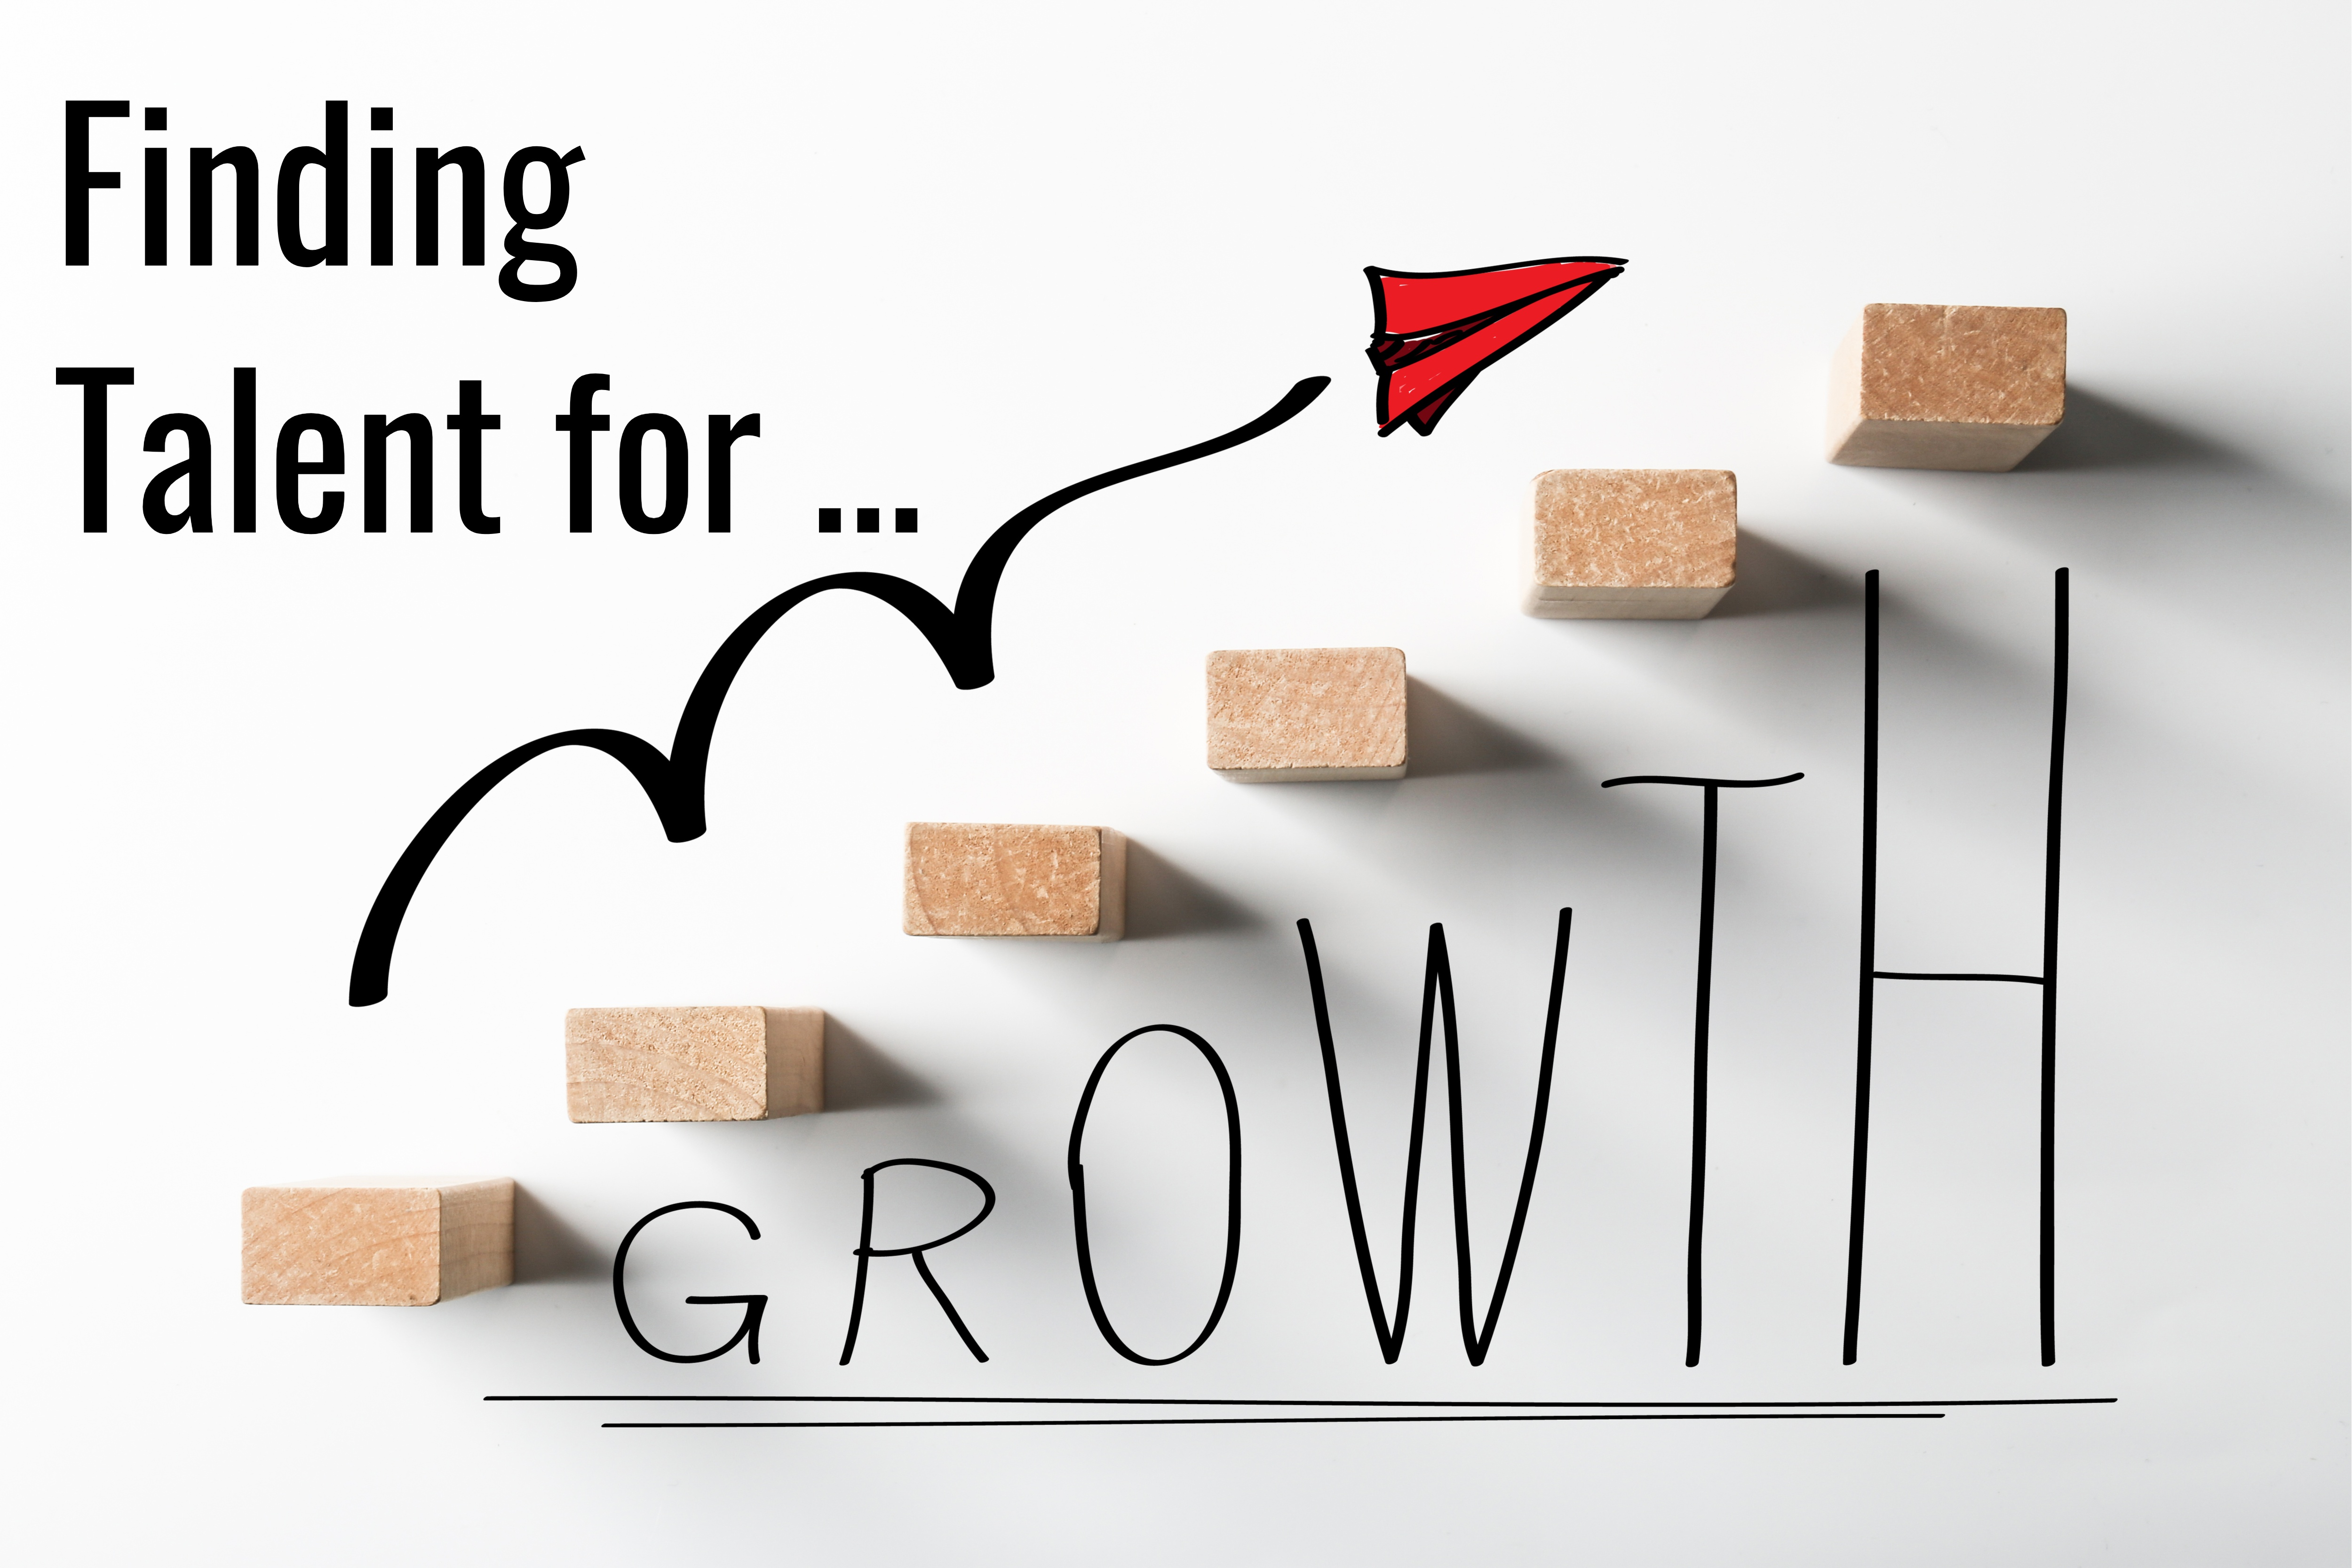 Finding Talent For Growth